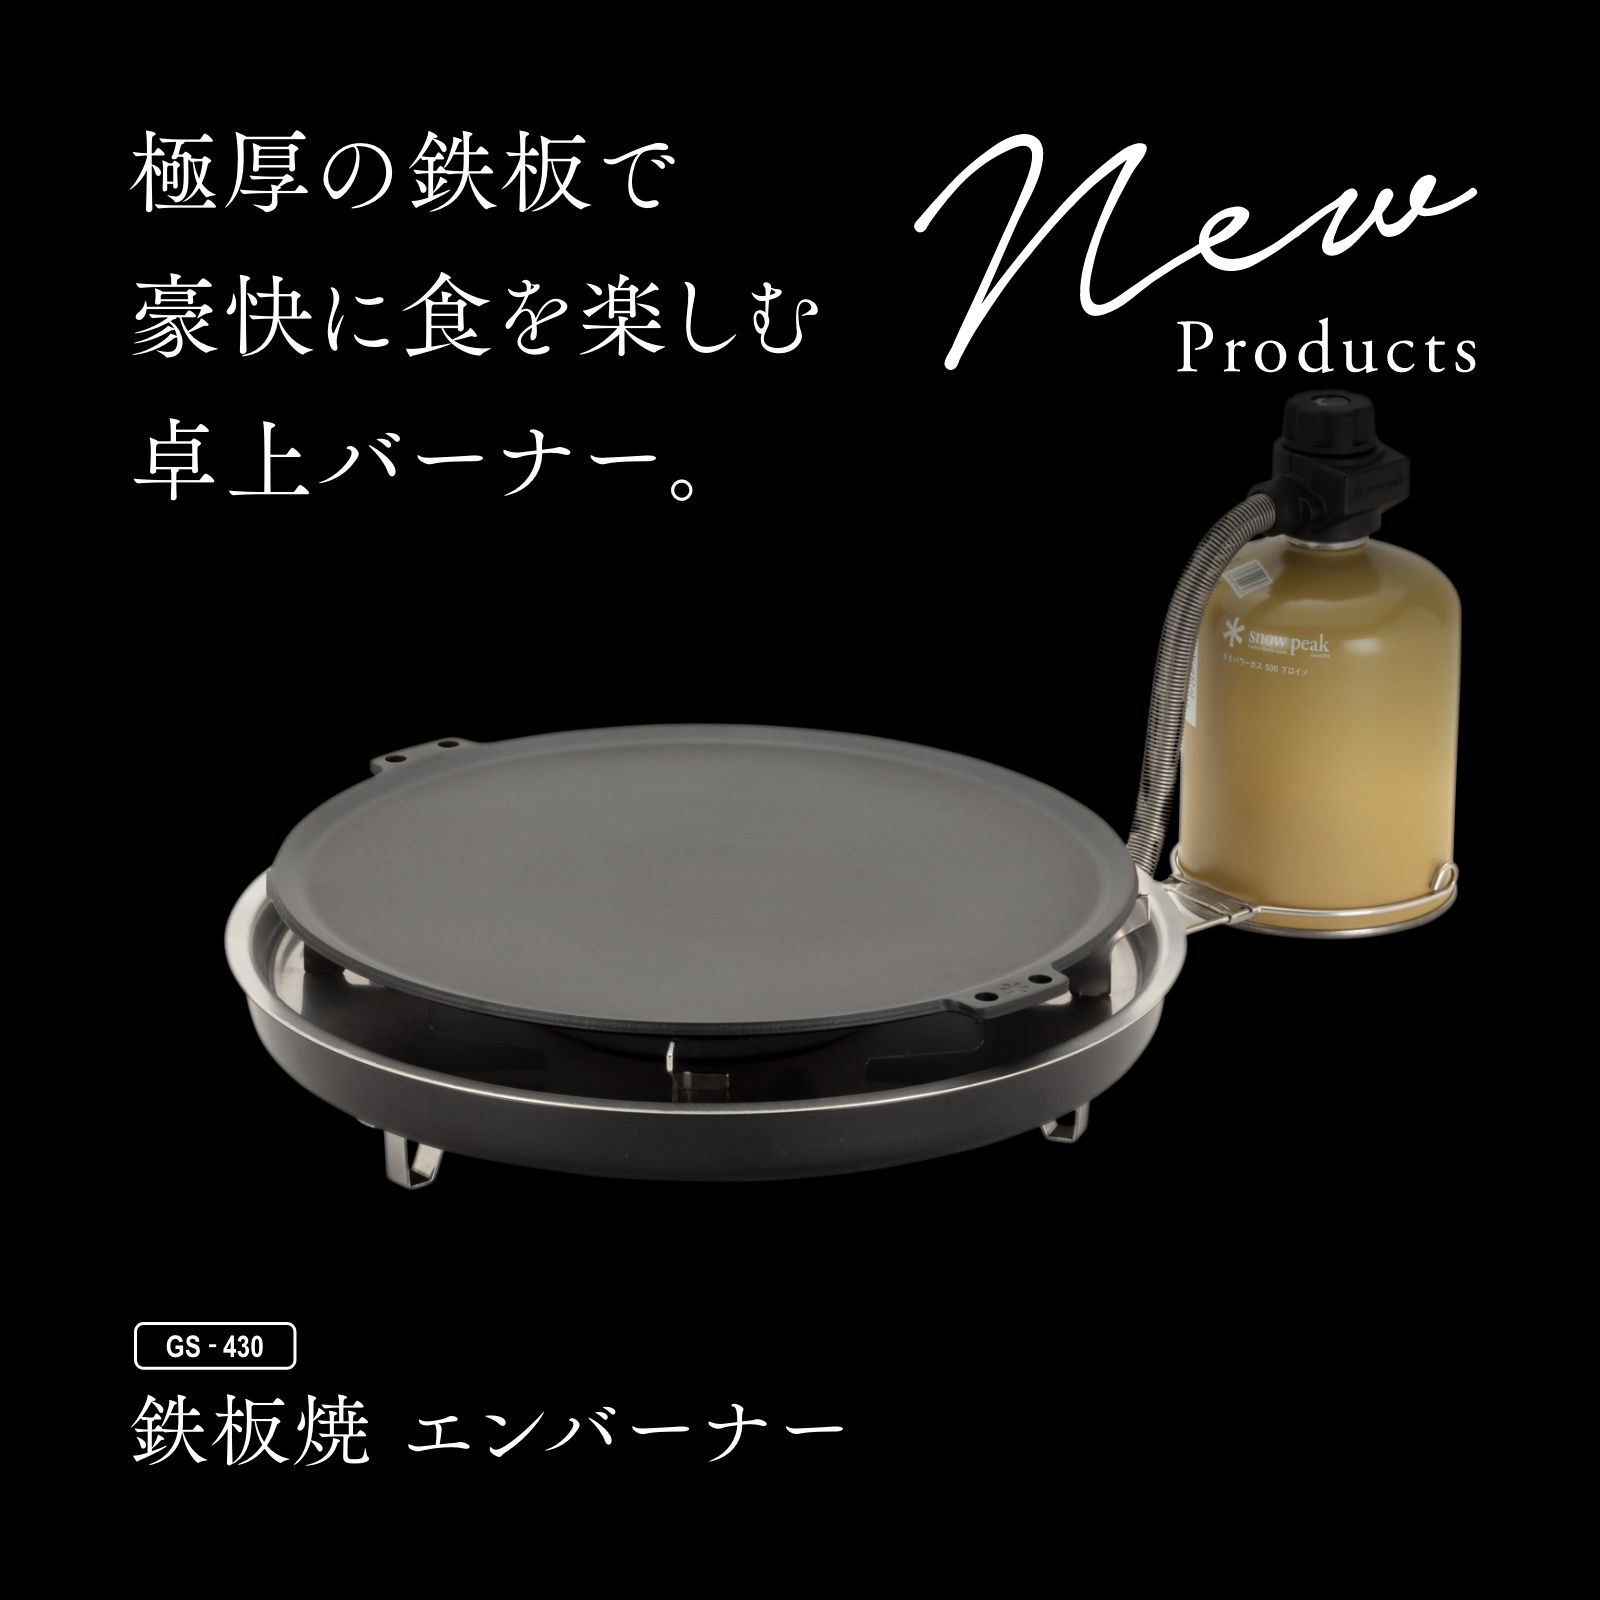 【sp】2021newproduct_GS-430